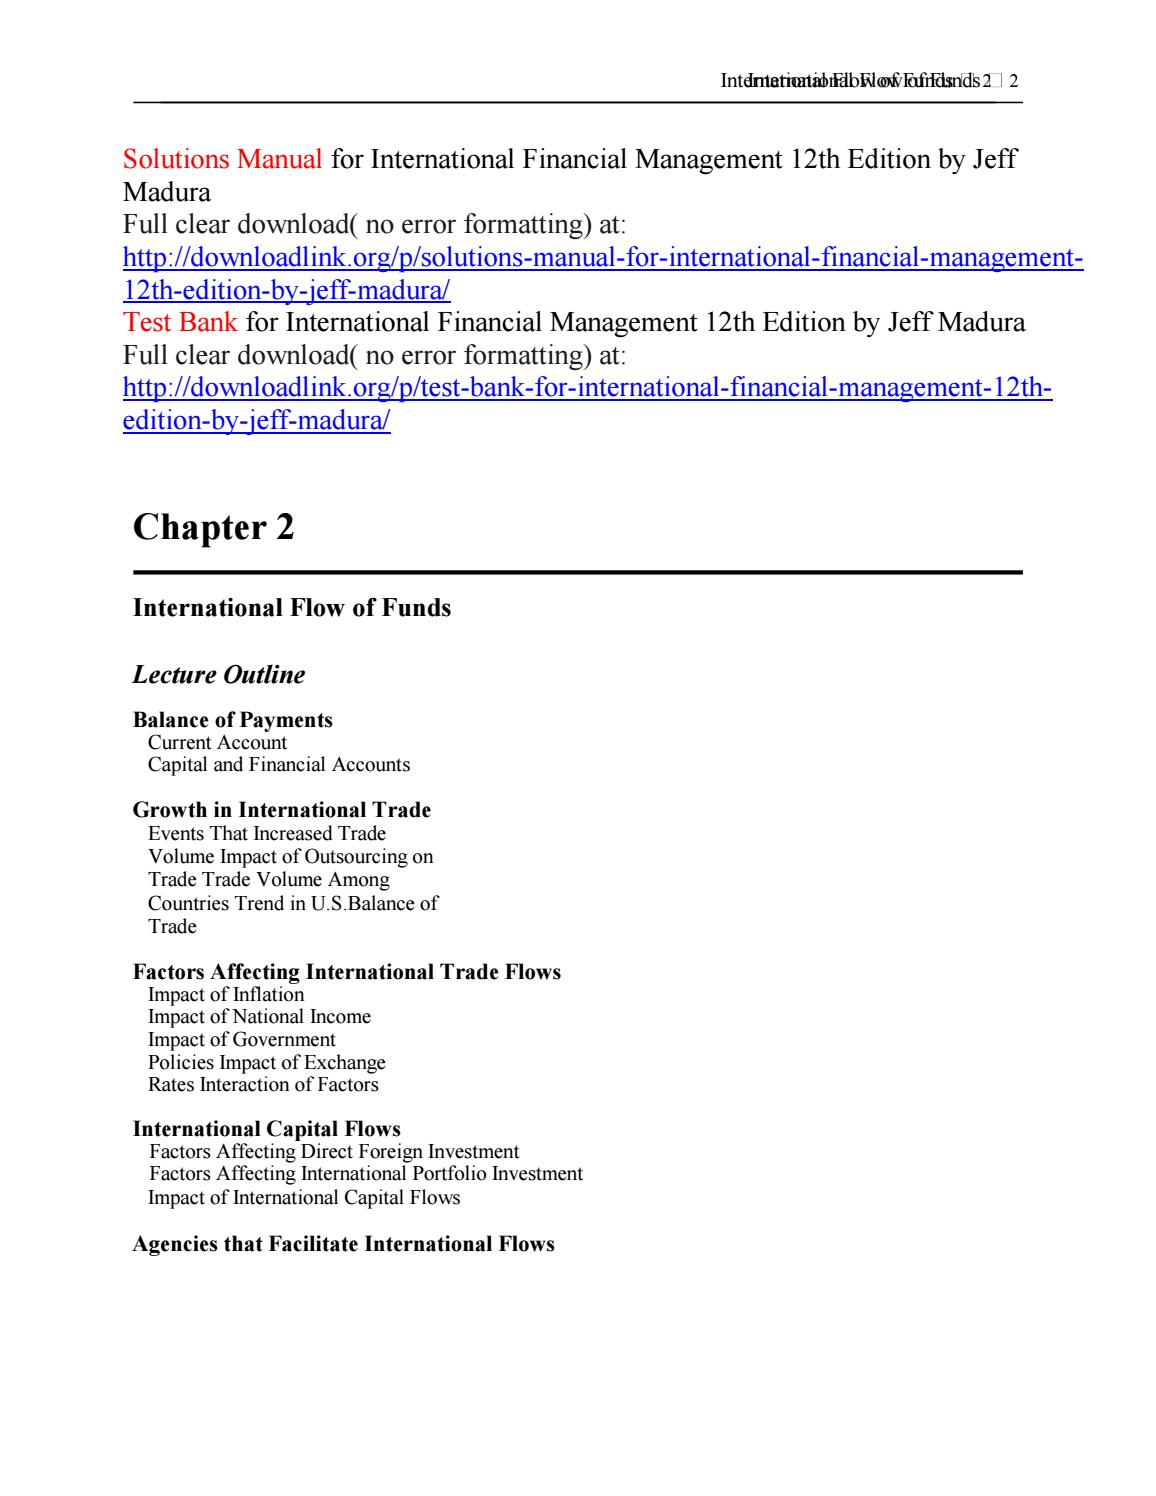 Solutions manual for international financial management 12th edition by  jeff madura by Abel2937 - issuu